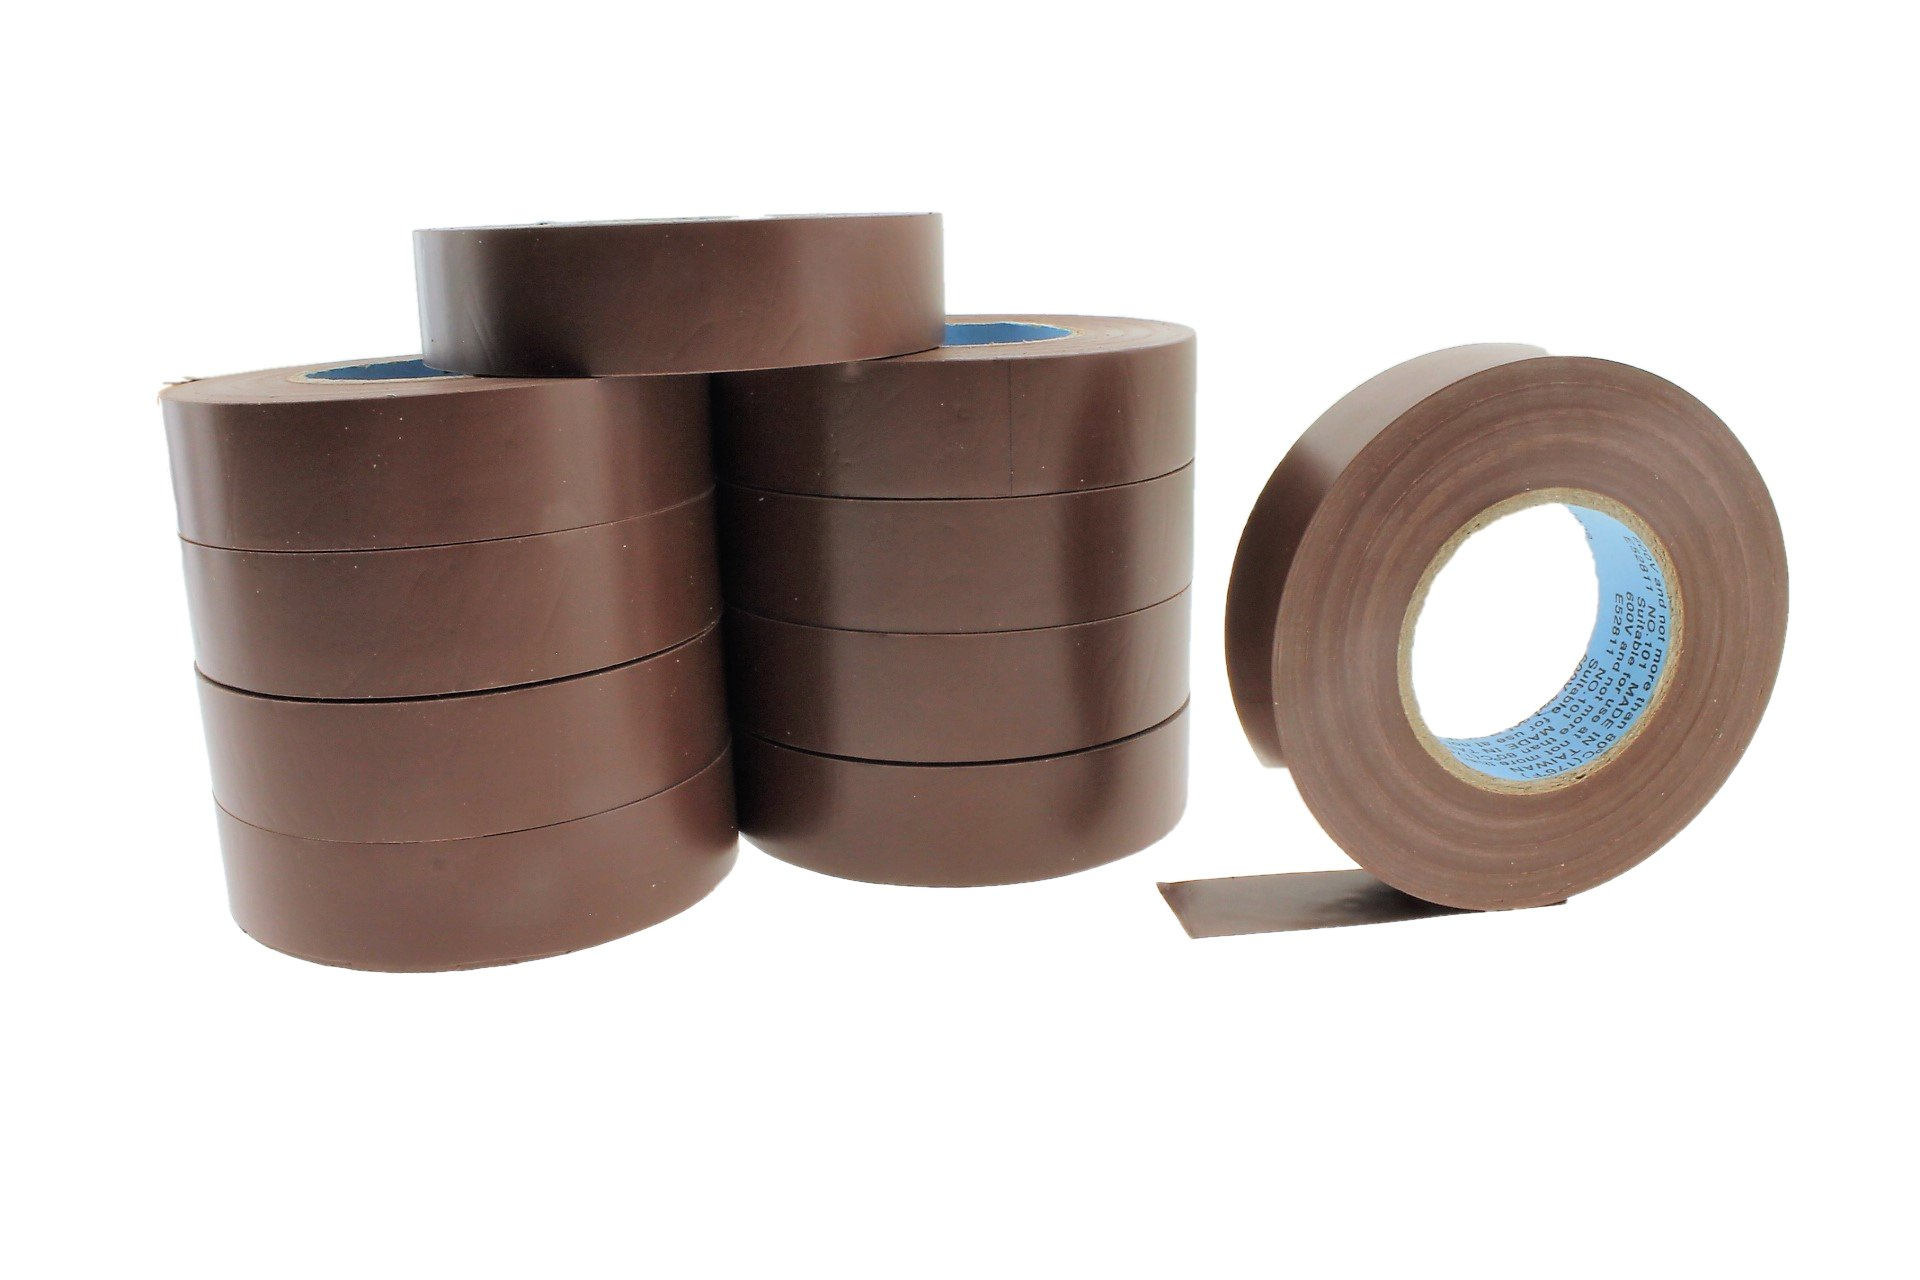 10pk 3/4'' BROWN Electrical Tape Supreme Durable .75 Pro-Grade Wire harness PVC Vinyl Marking Labeling Coding Warning Safety Flame Retardant 60' 7 mil